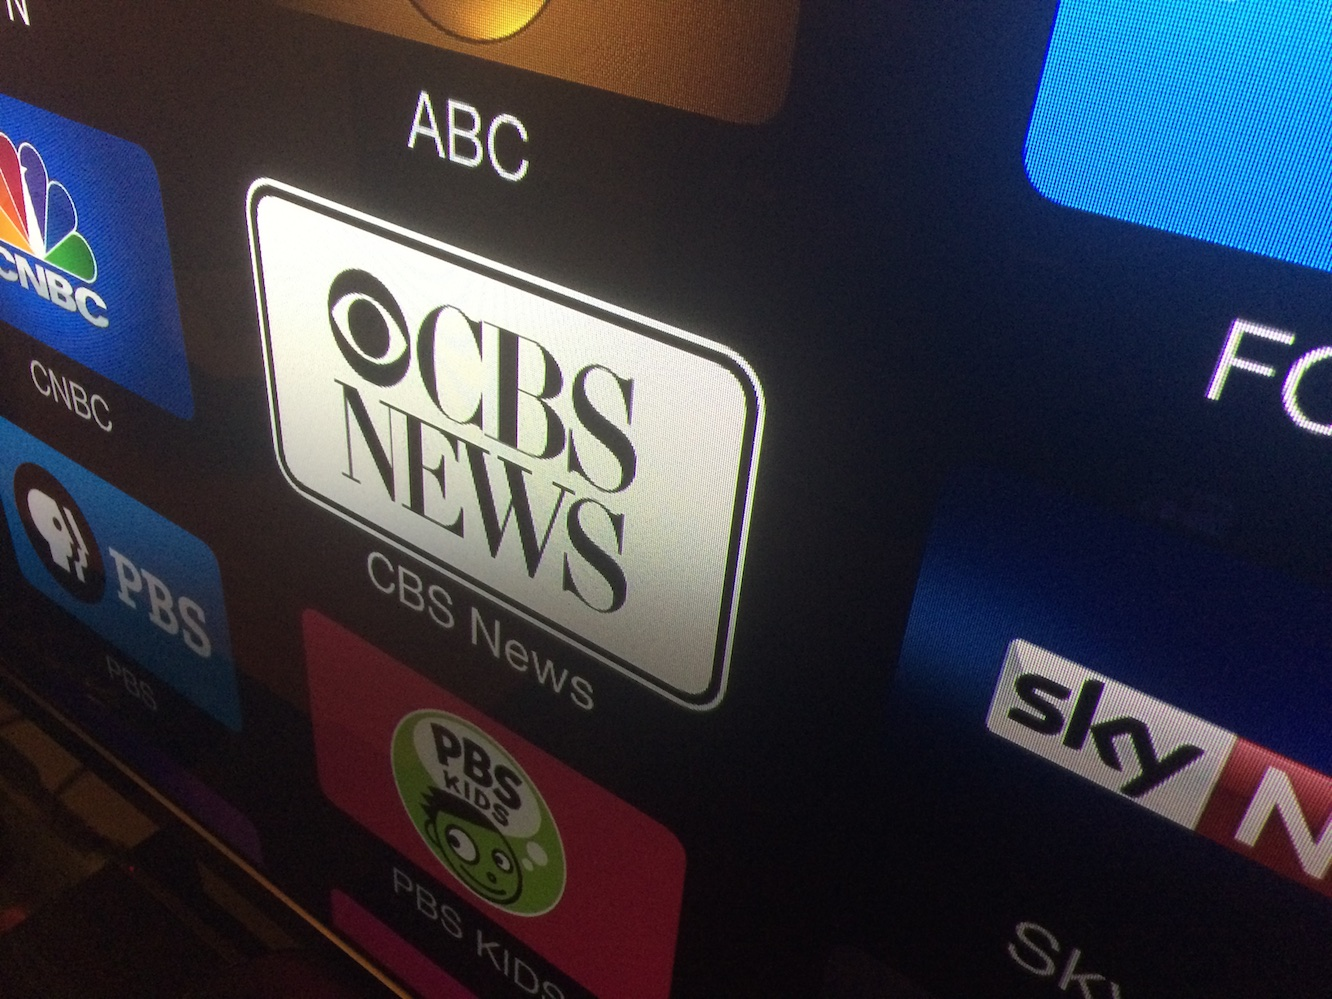 Apple TV adds CBS News channel